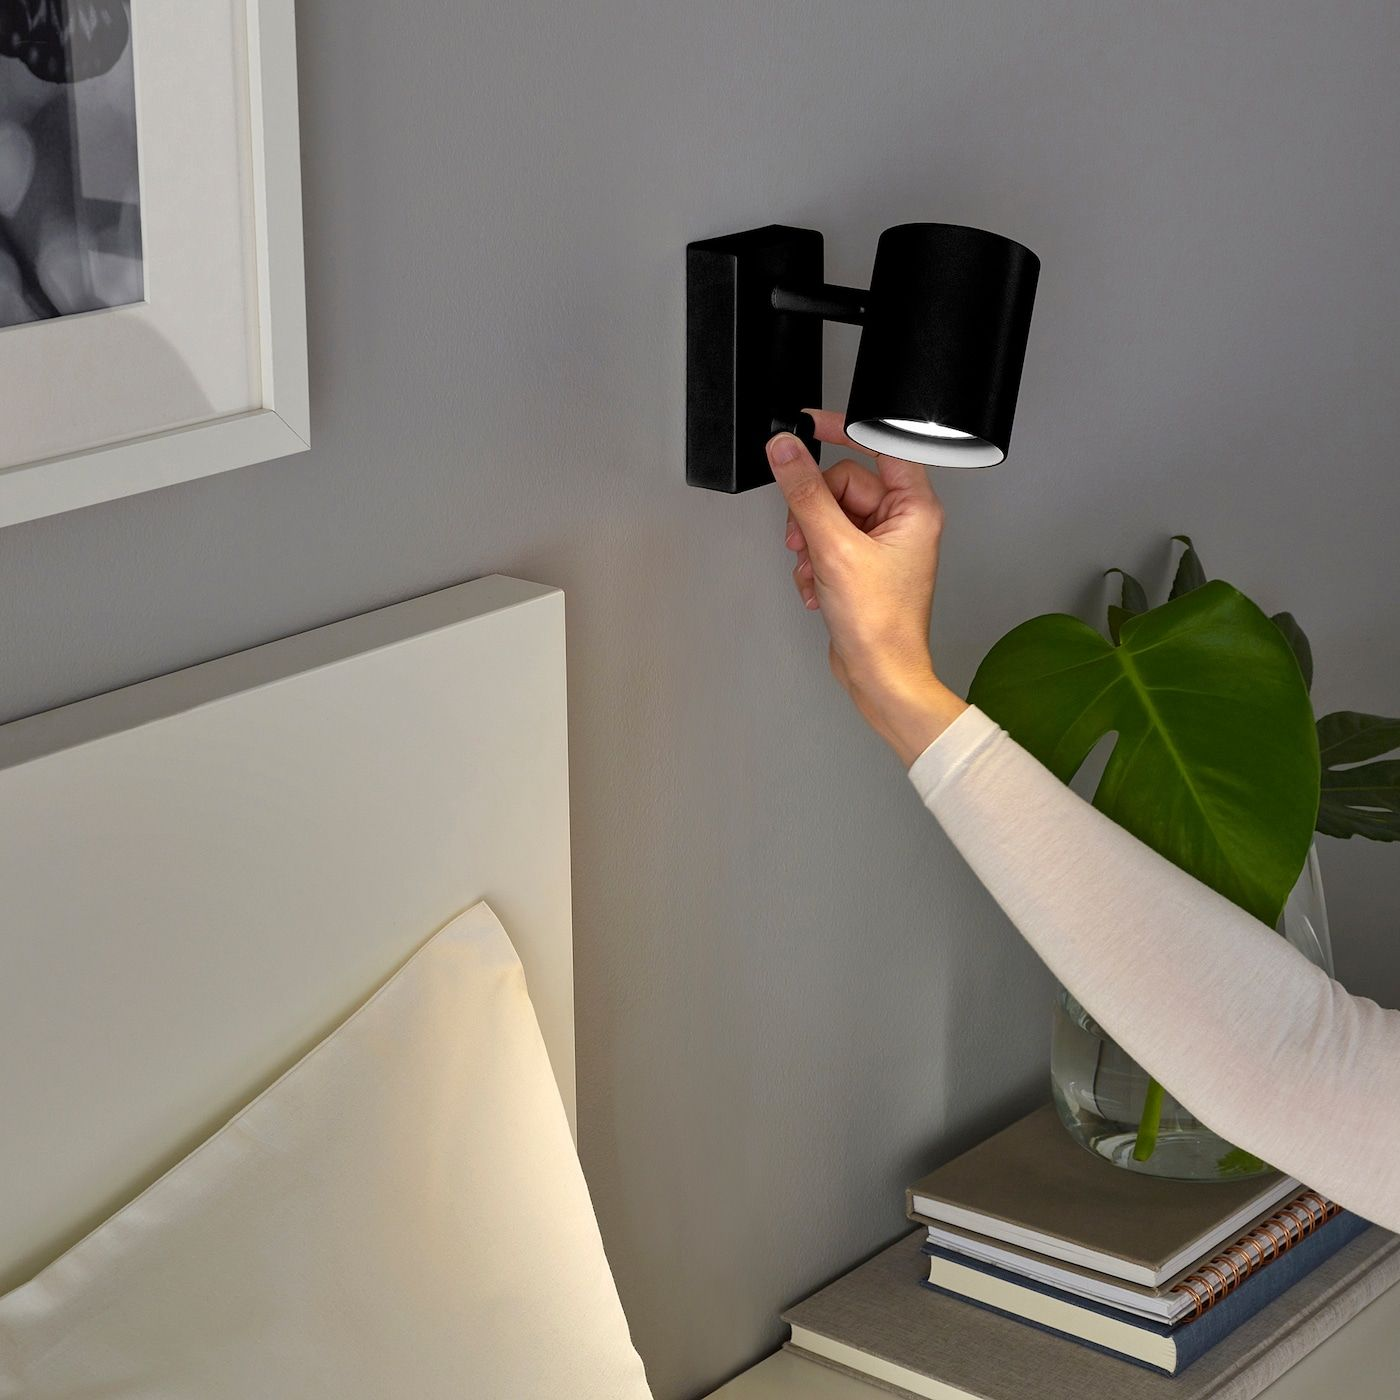 Ikea Leselampe Schlafzimmer NymÅne Anthracite, Wall/reading Lamp, Wired-in Inst - Ikea In 2020 | Ikea Lampen, Schlafzimmer Leseleuchten, Leselampe Bett